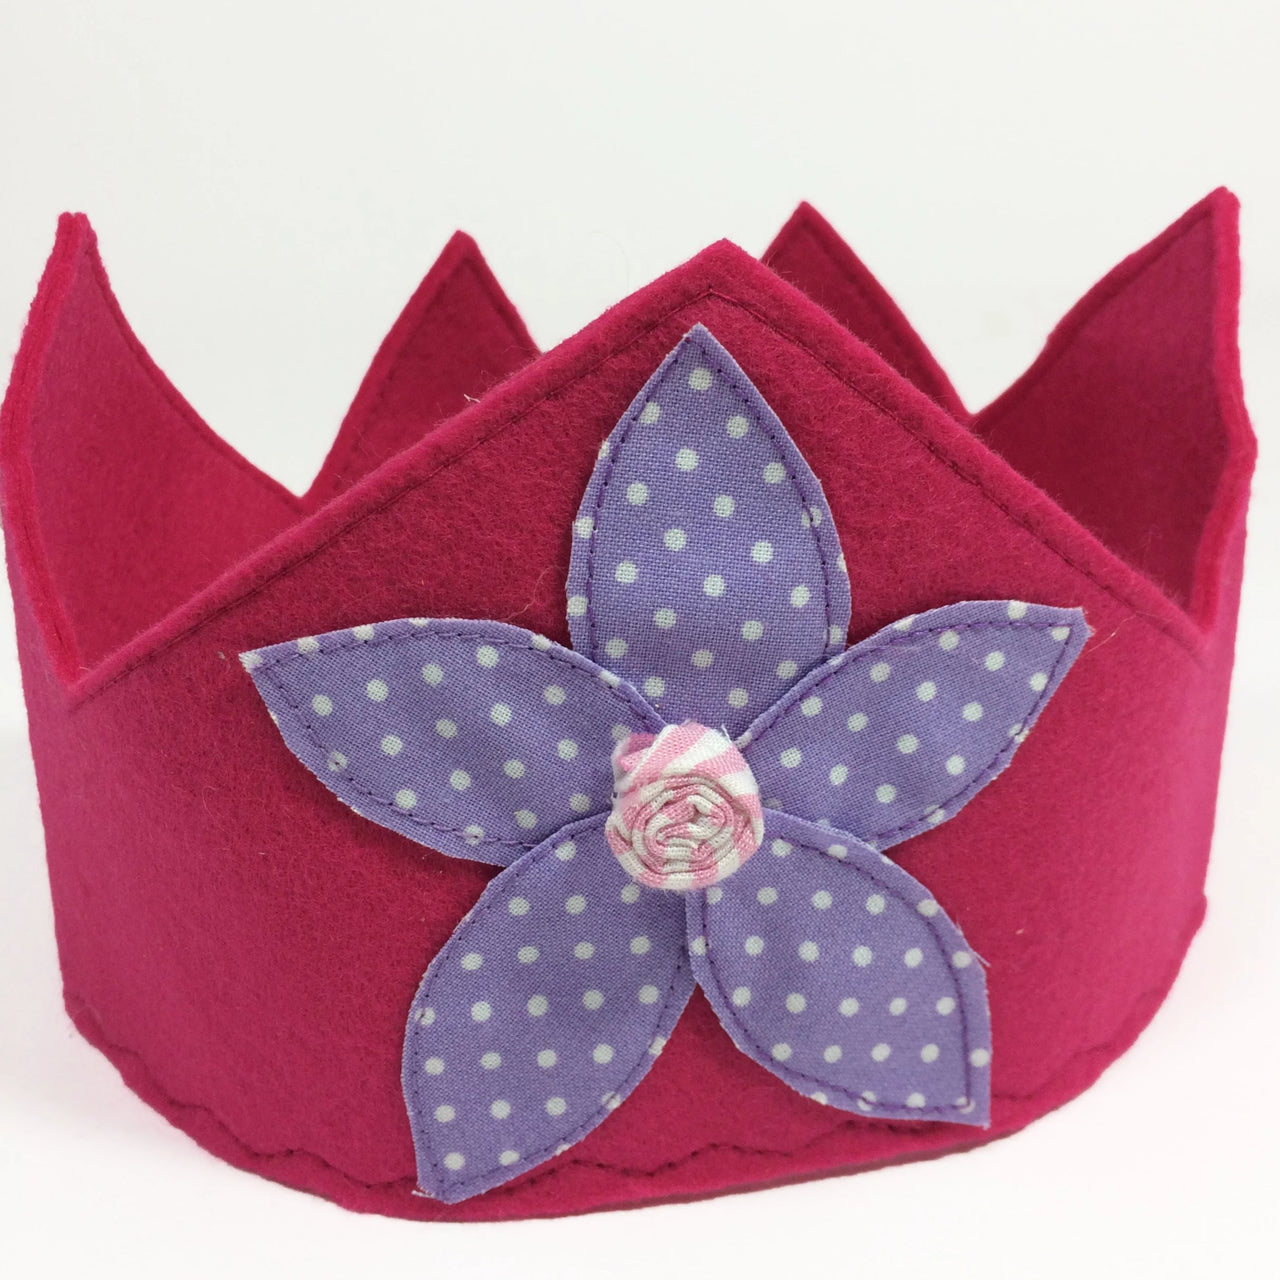 Princess Crown Fuschia. Our little Princess Crown will surely ignite the imagination of your little lady! It is perfect for birthdays, dress up parties, or simply hanging around as a princess everyday!